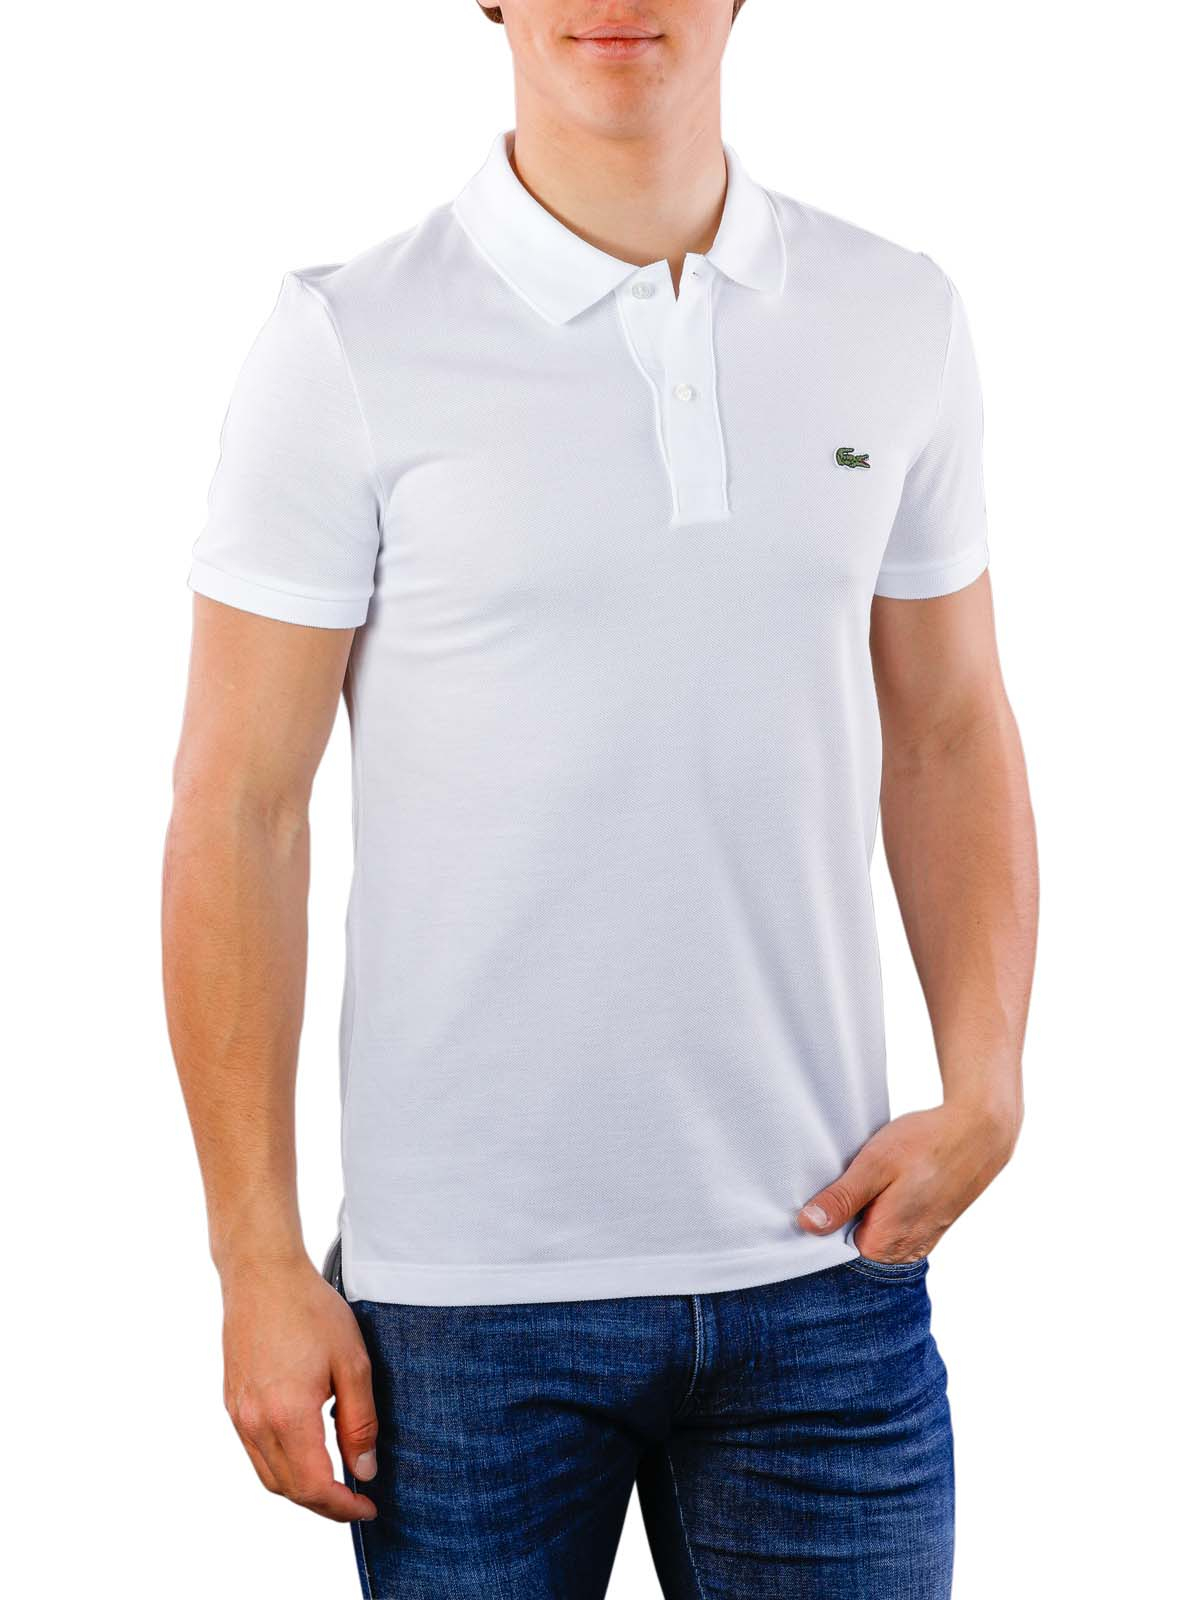 9fde52d2 Fast Delivery | Lacoste Polo Shirt Slim Short Sleeves ... - McJeans.ch